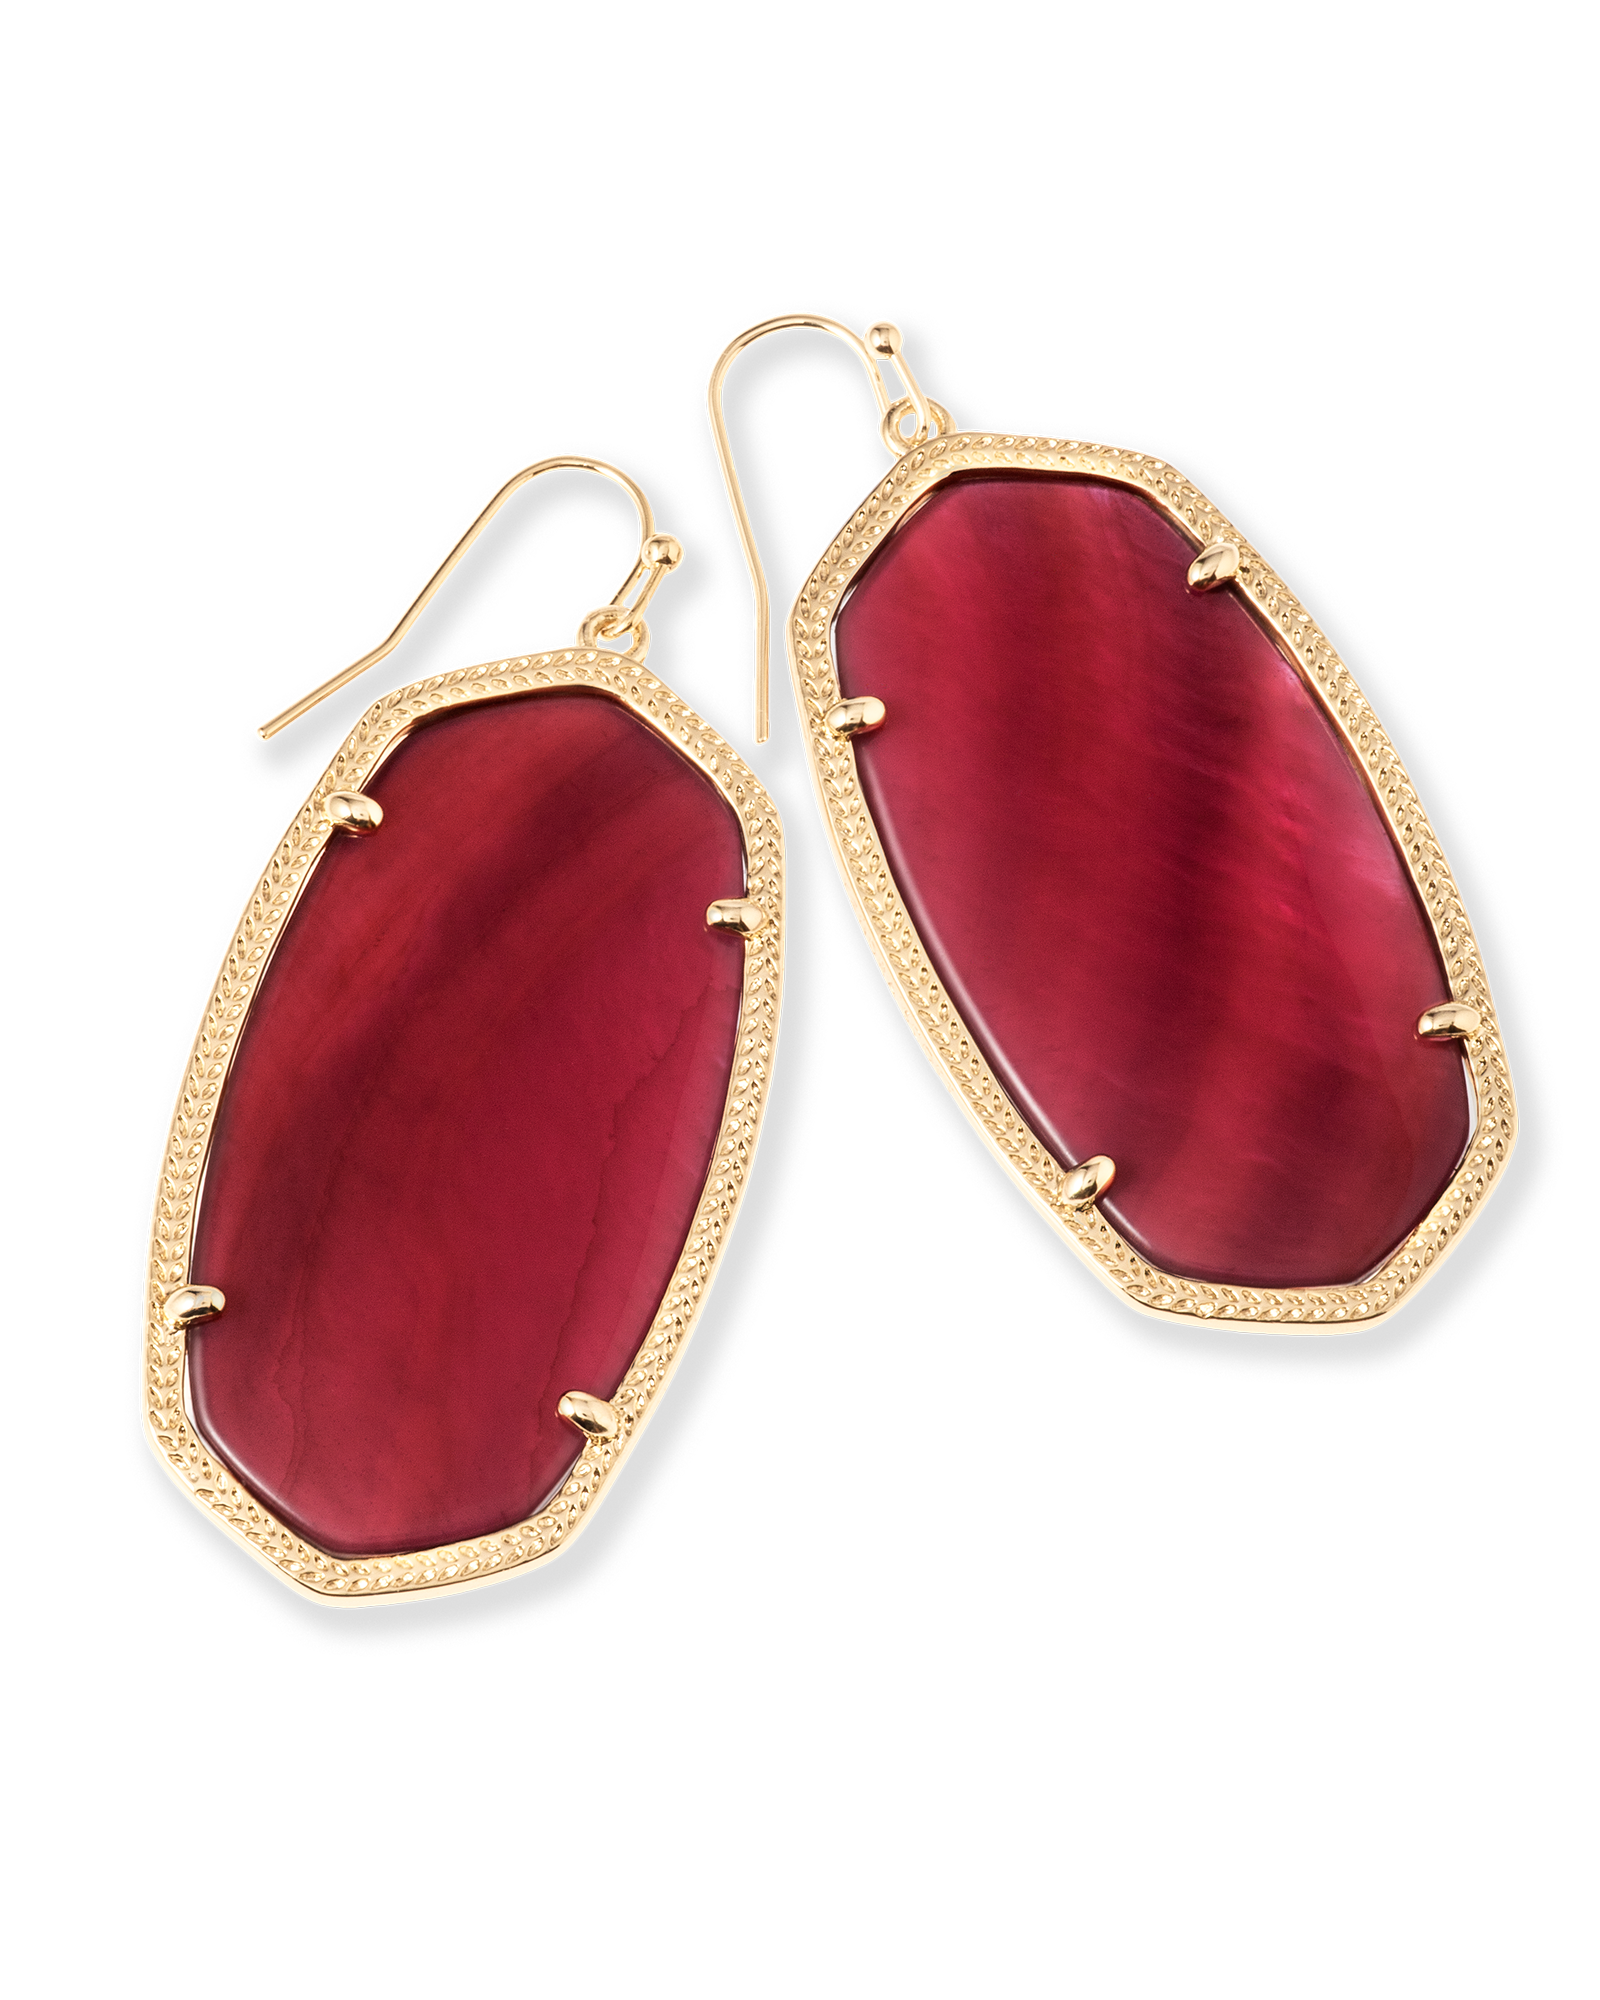 Danielle Statement Earrings in Burgundy Illusion